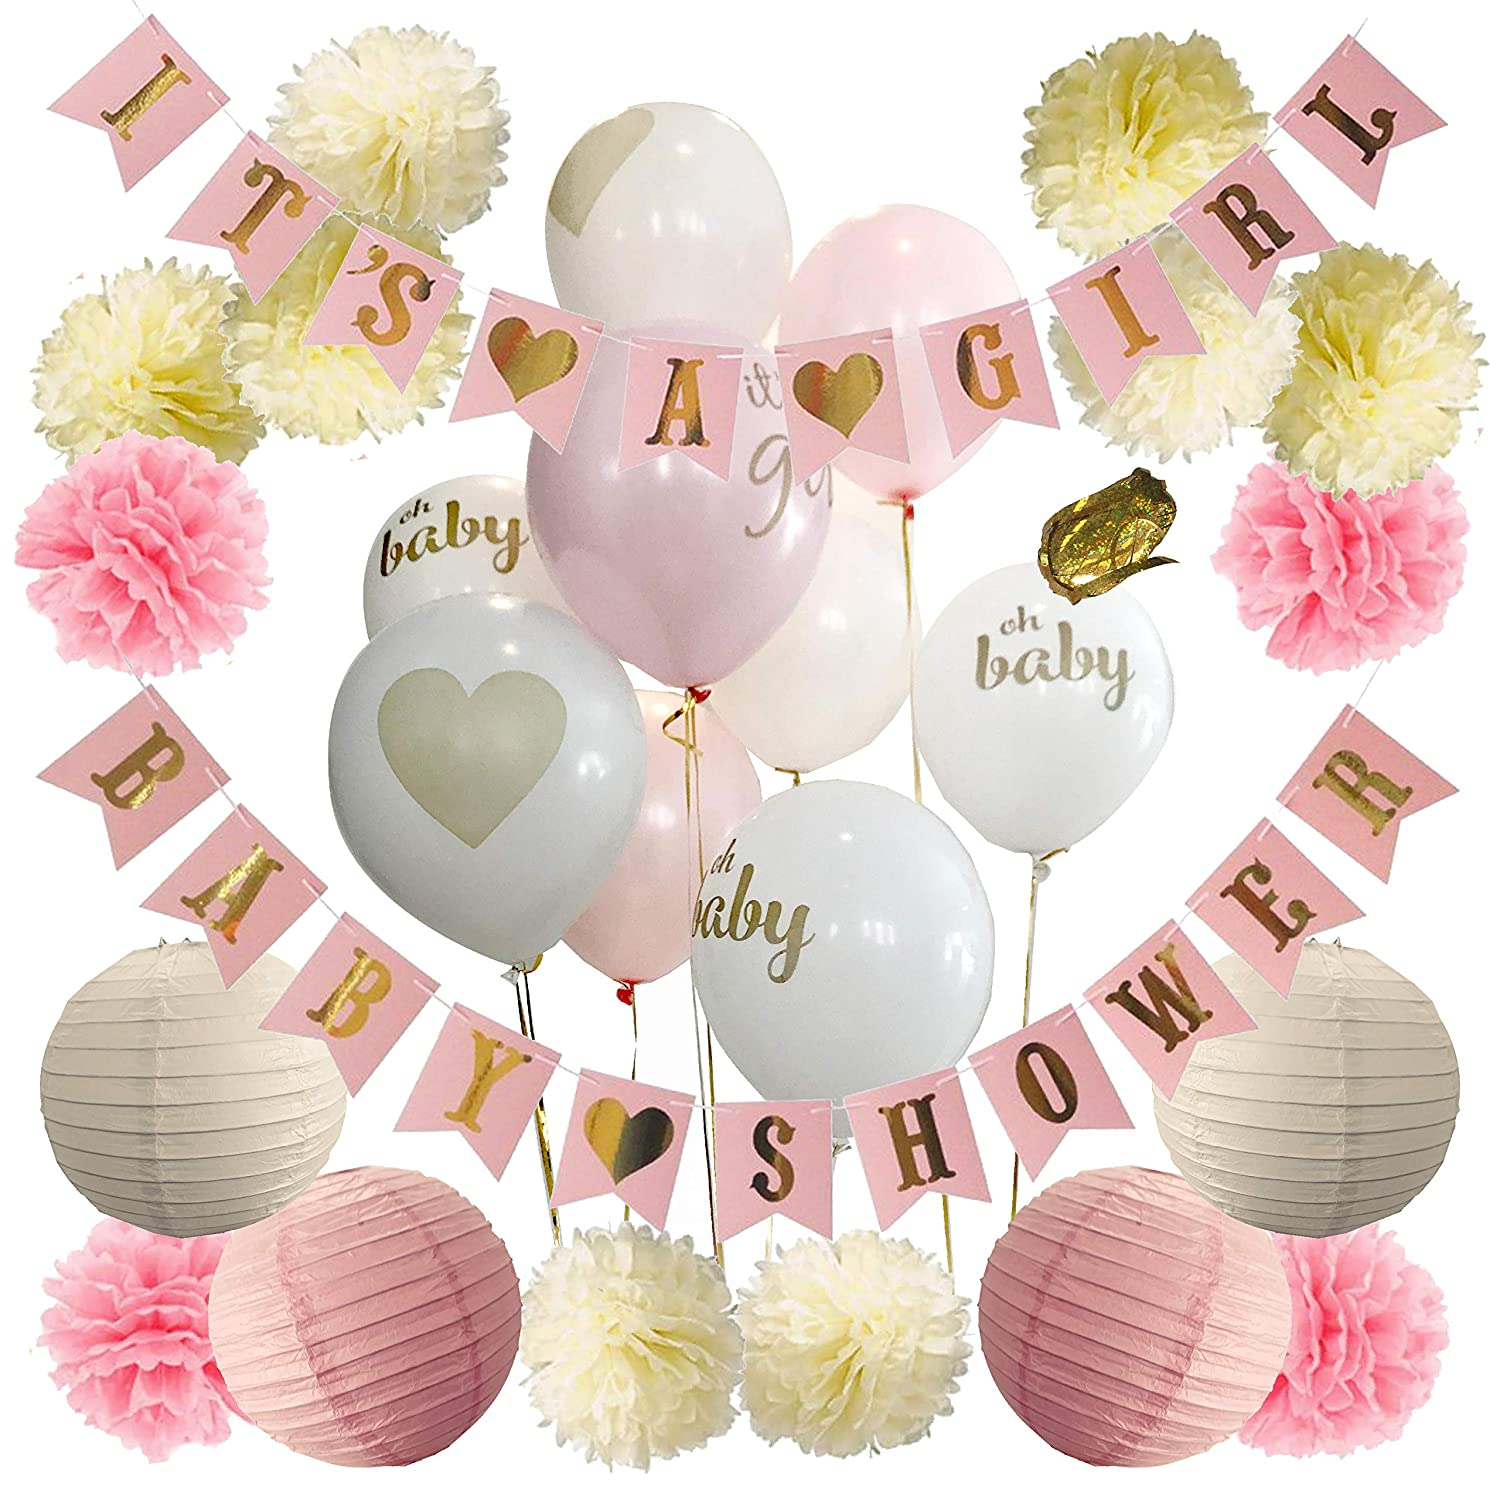 Baby Shower Decorations For Girl - Baby Shower Decorations: It's a Girl & Baby  Shower Banner, Baby Girl Shower Decorations Kit with Banners, Balloons, ...